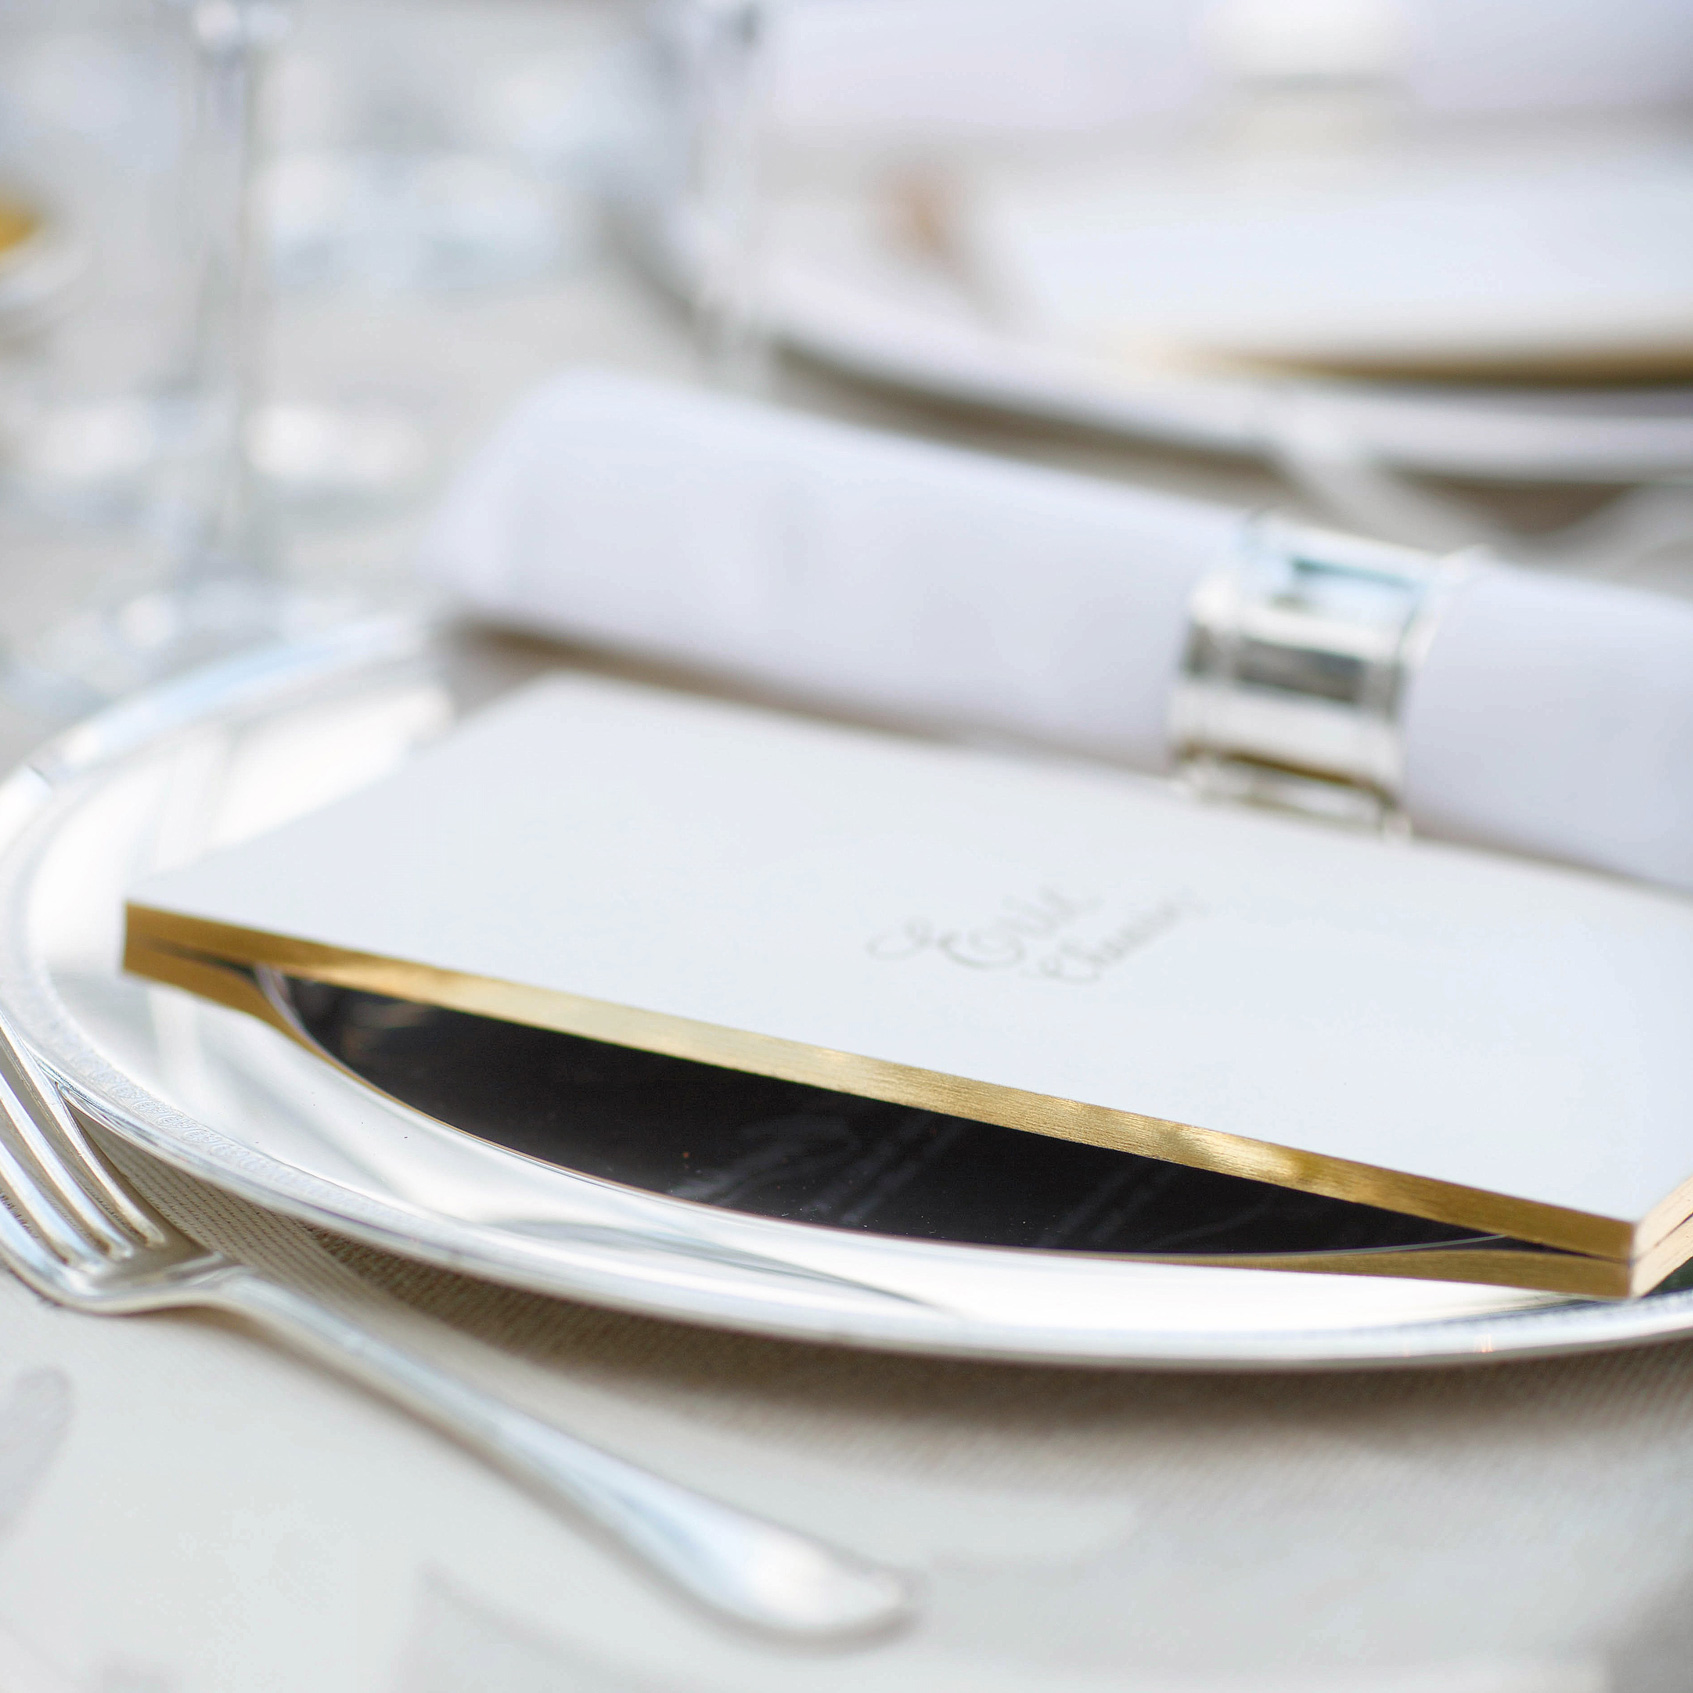 Sallee  \\Living on the edge. Quarter inch thick gilded menus for a destination wedding in Instanbul.